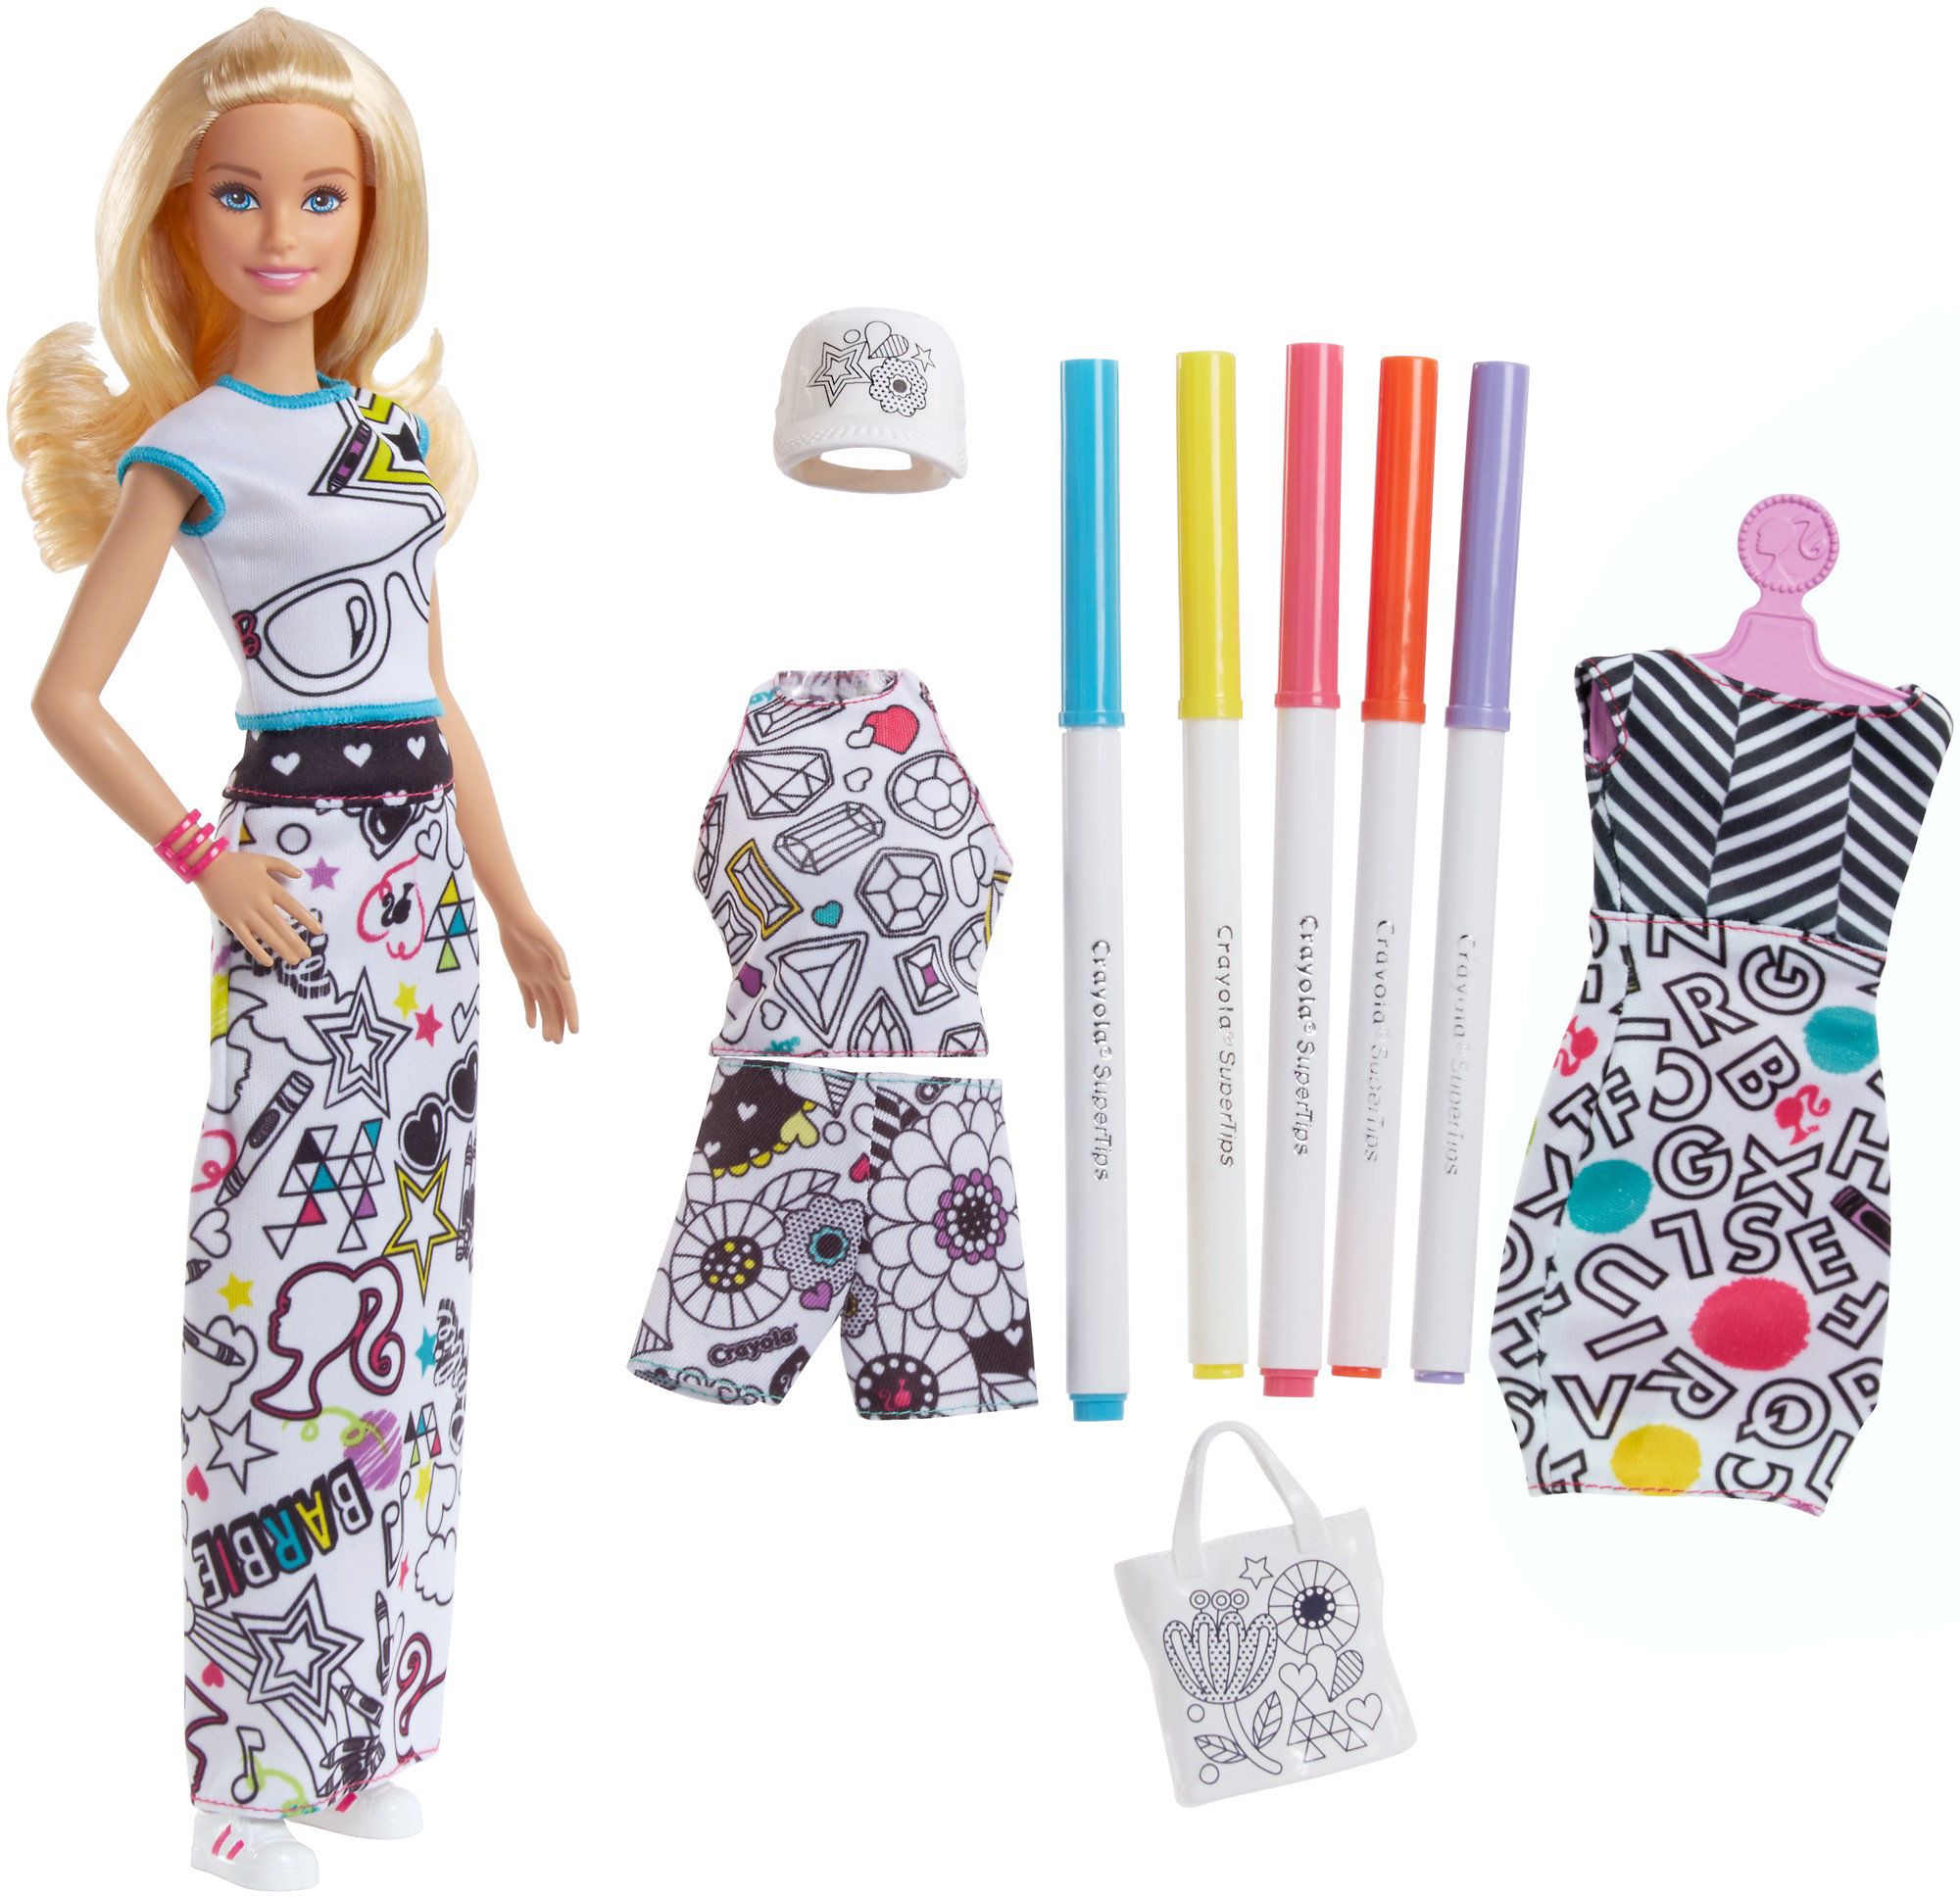 Barbie Crayola Color-in Fashions, Blonde by Mattel